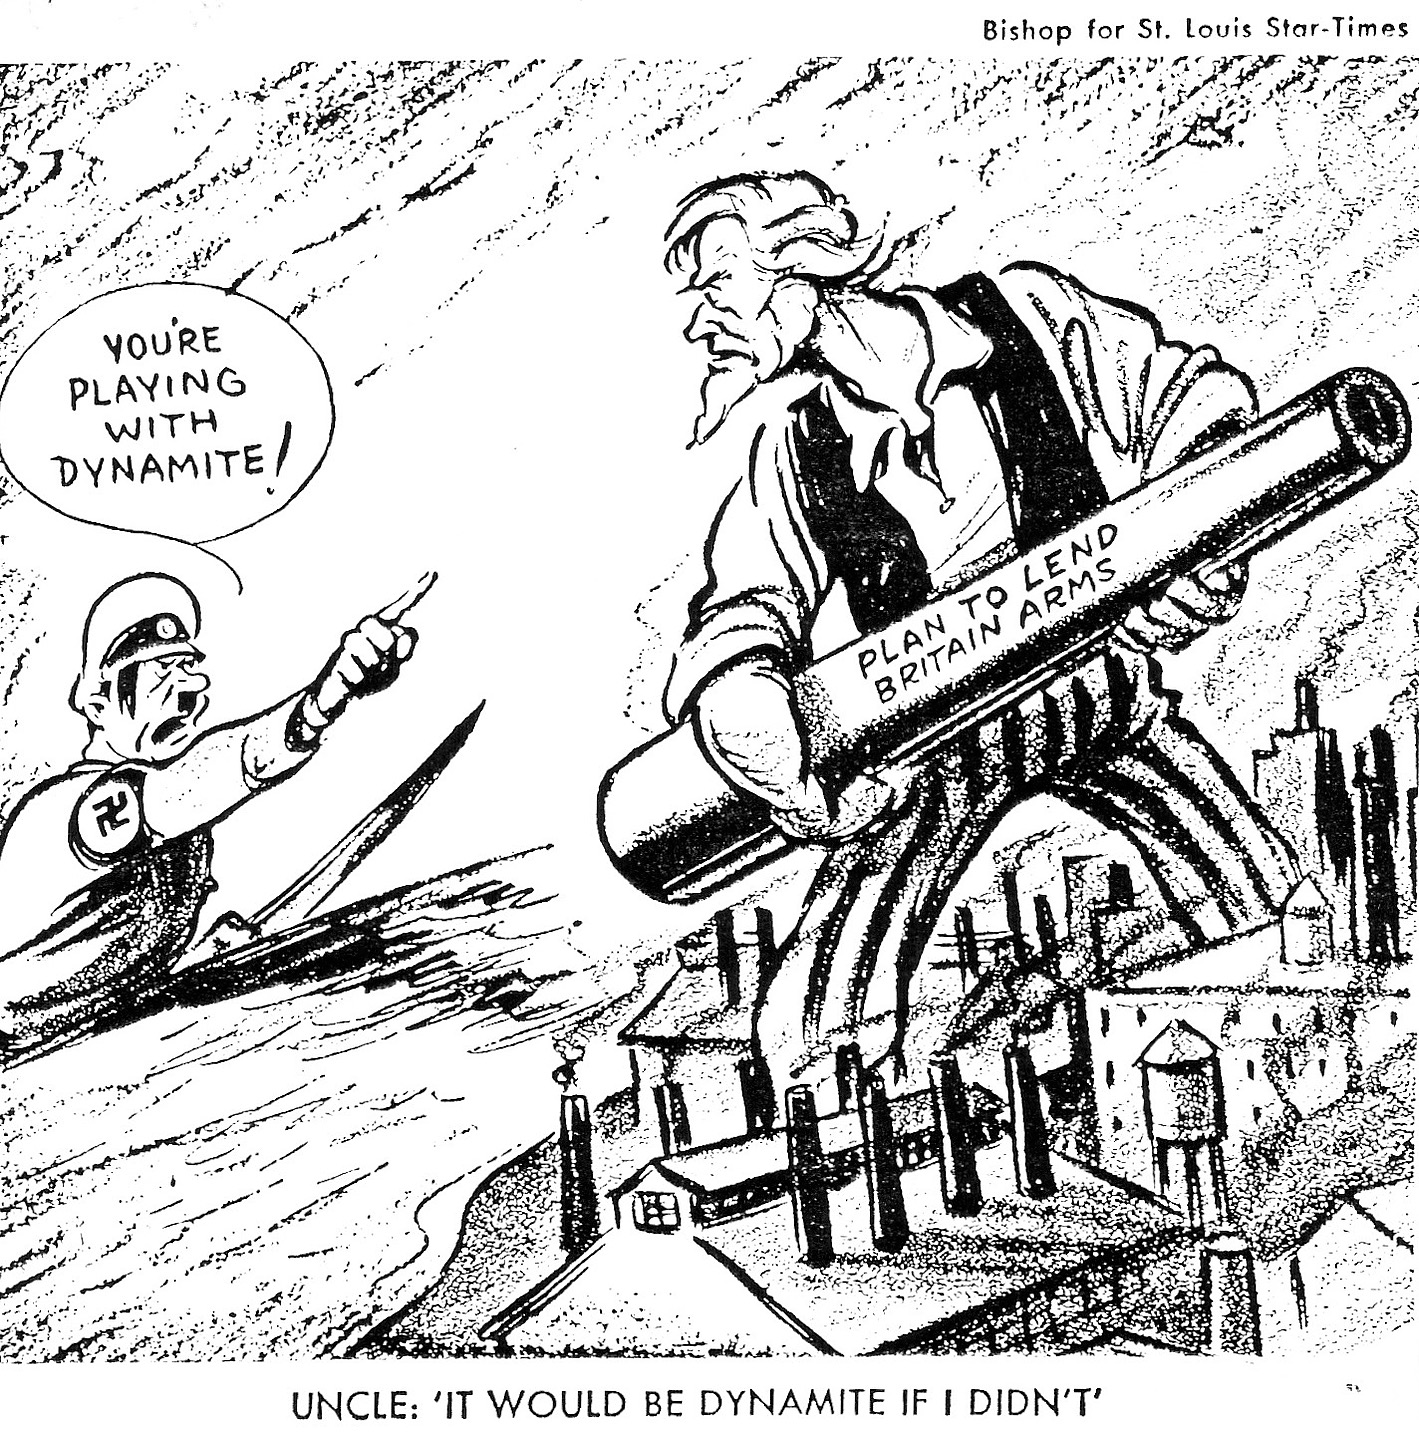 This Political Cartoon Is Representing The United